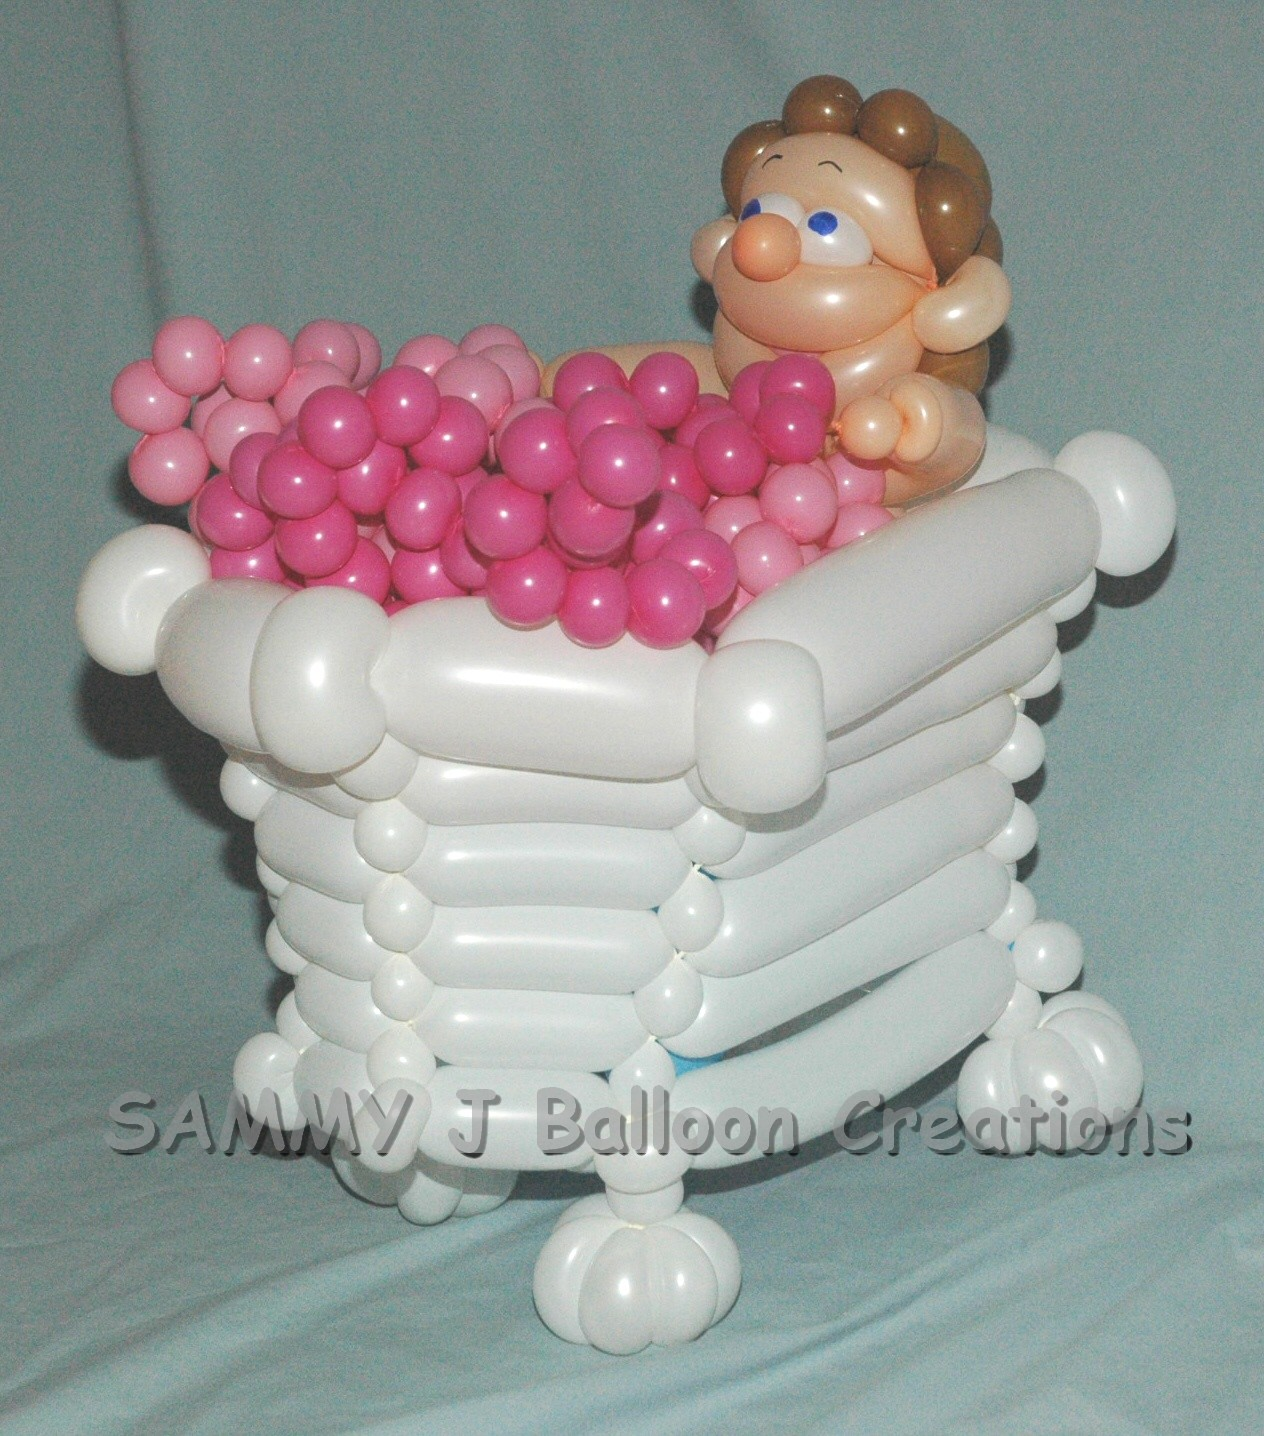 SAMMY J Balloon Creations st louis balloons bubble bath tub